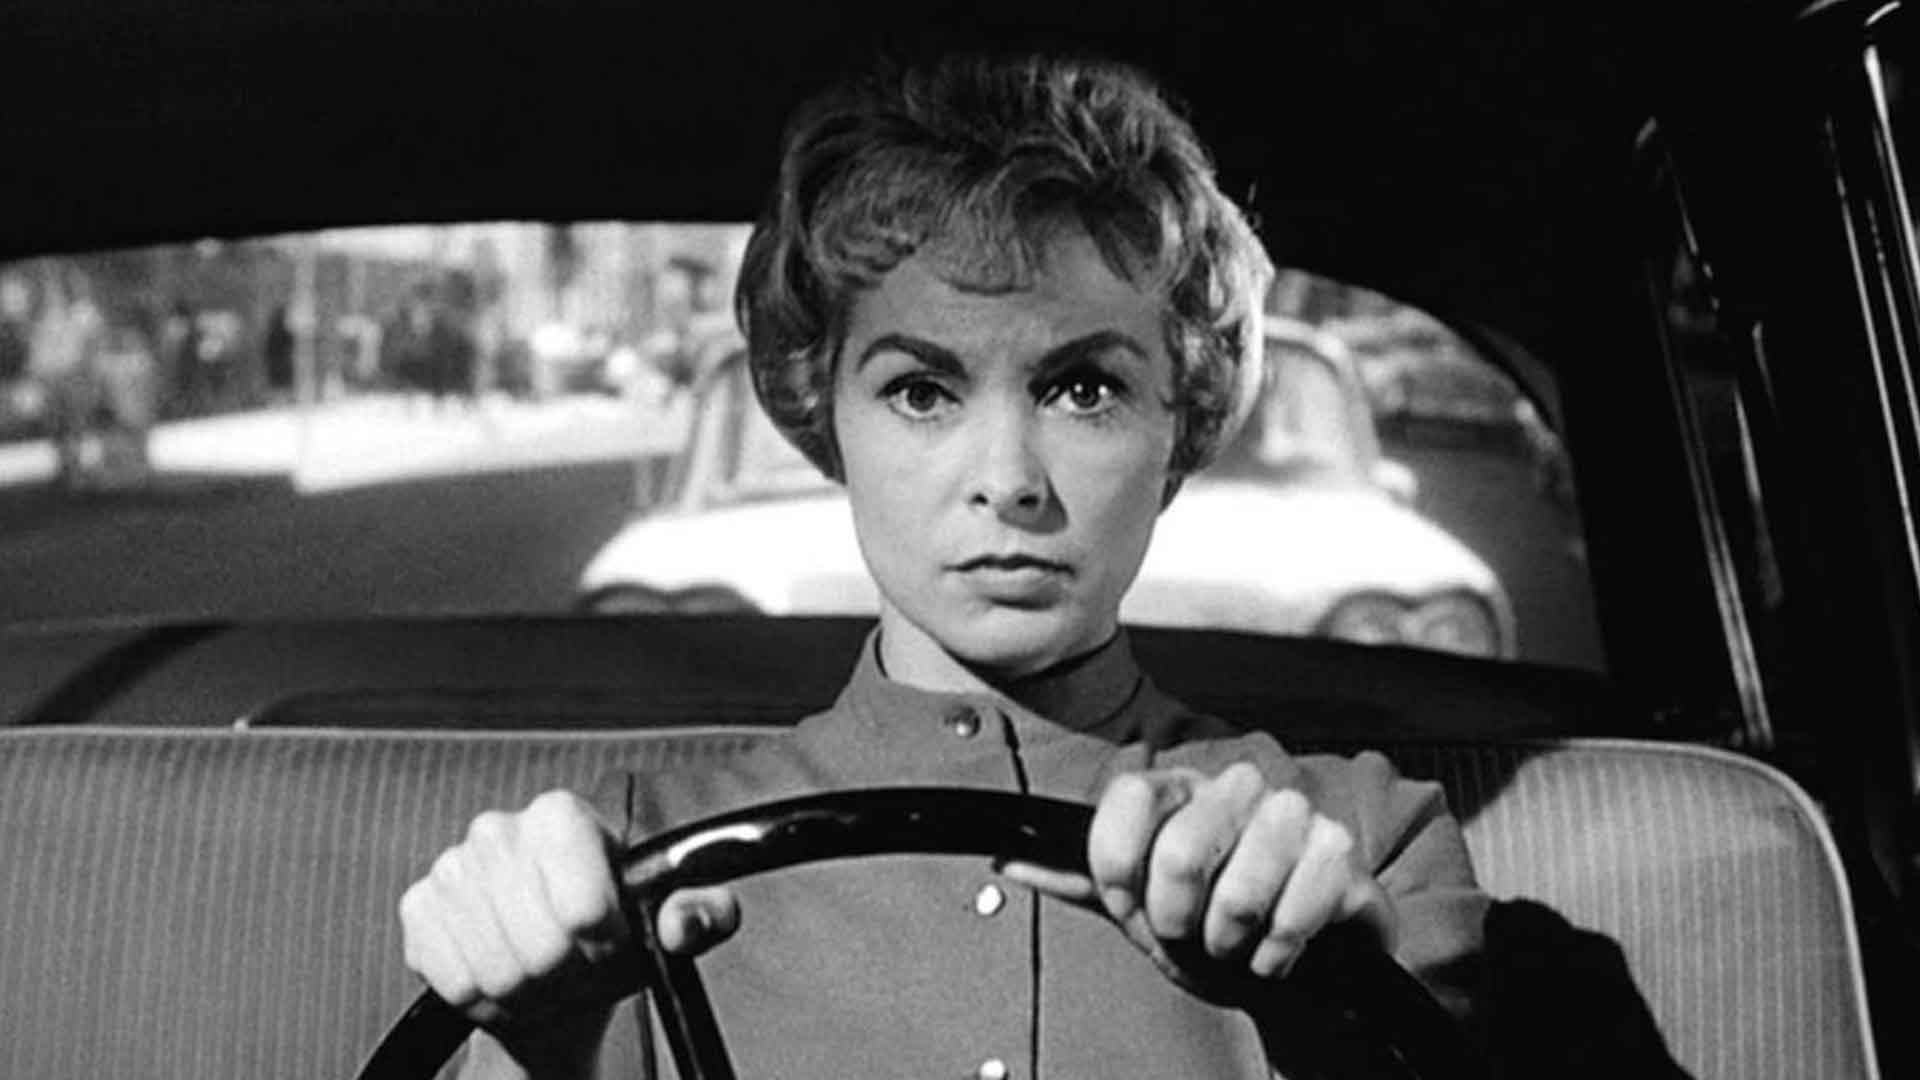 Janet Lee is behind the wheel in the black and white version of Psycho